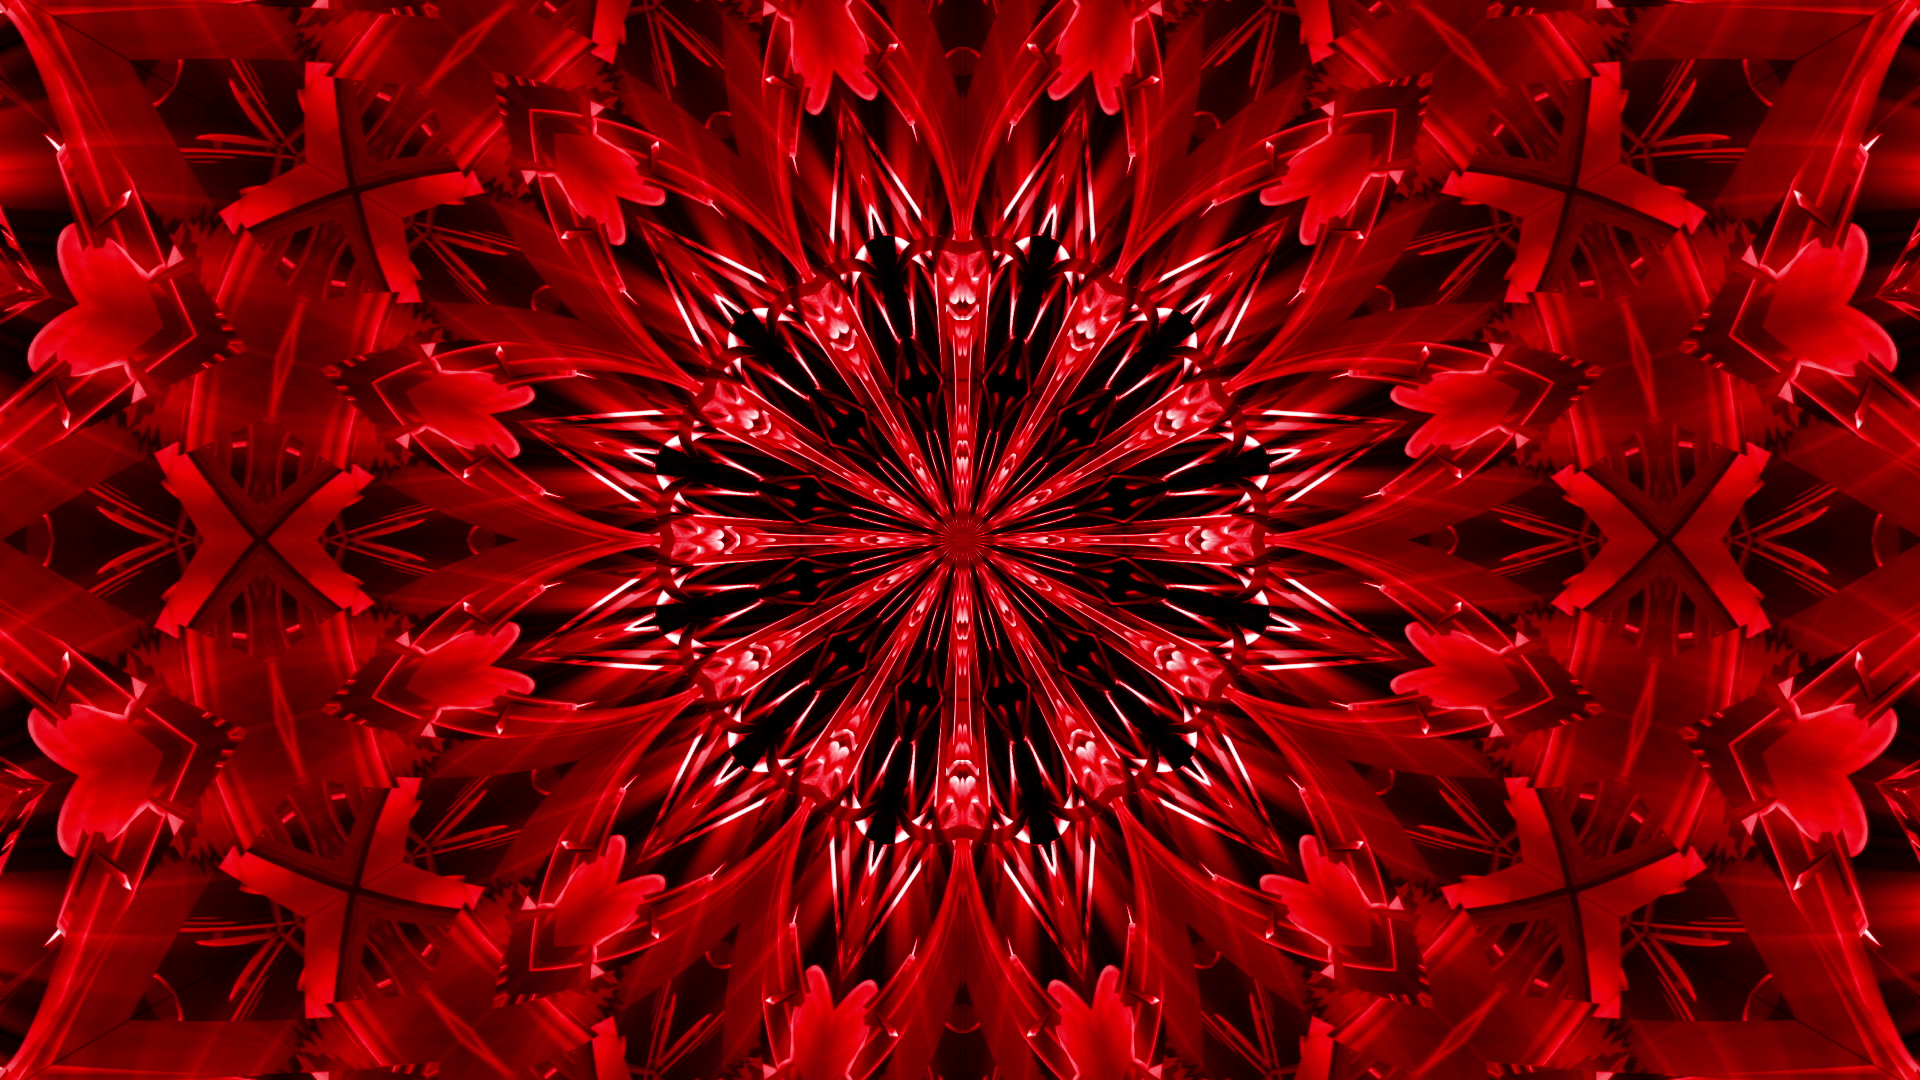 vj video background Red-Sun-Vj-Loop-LIMEART_003